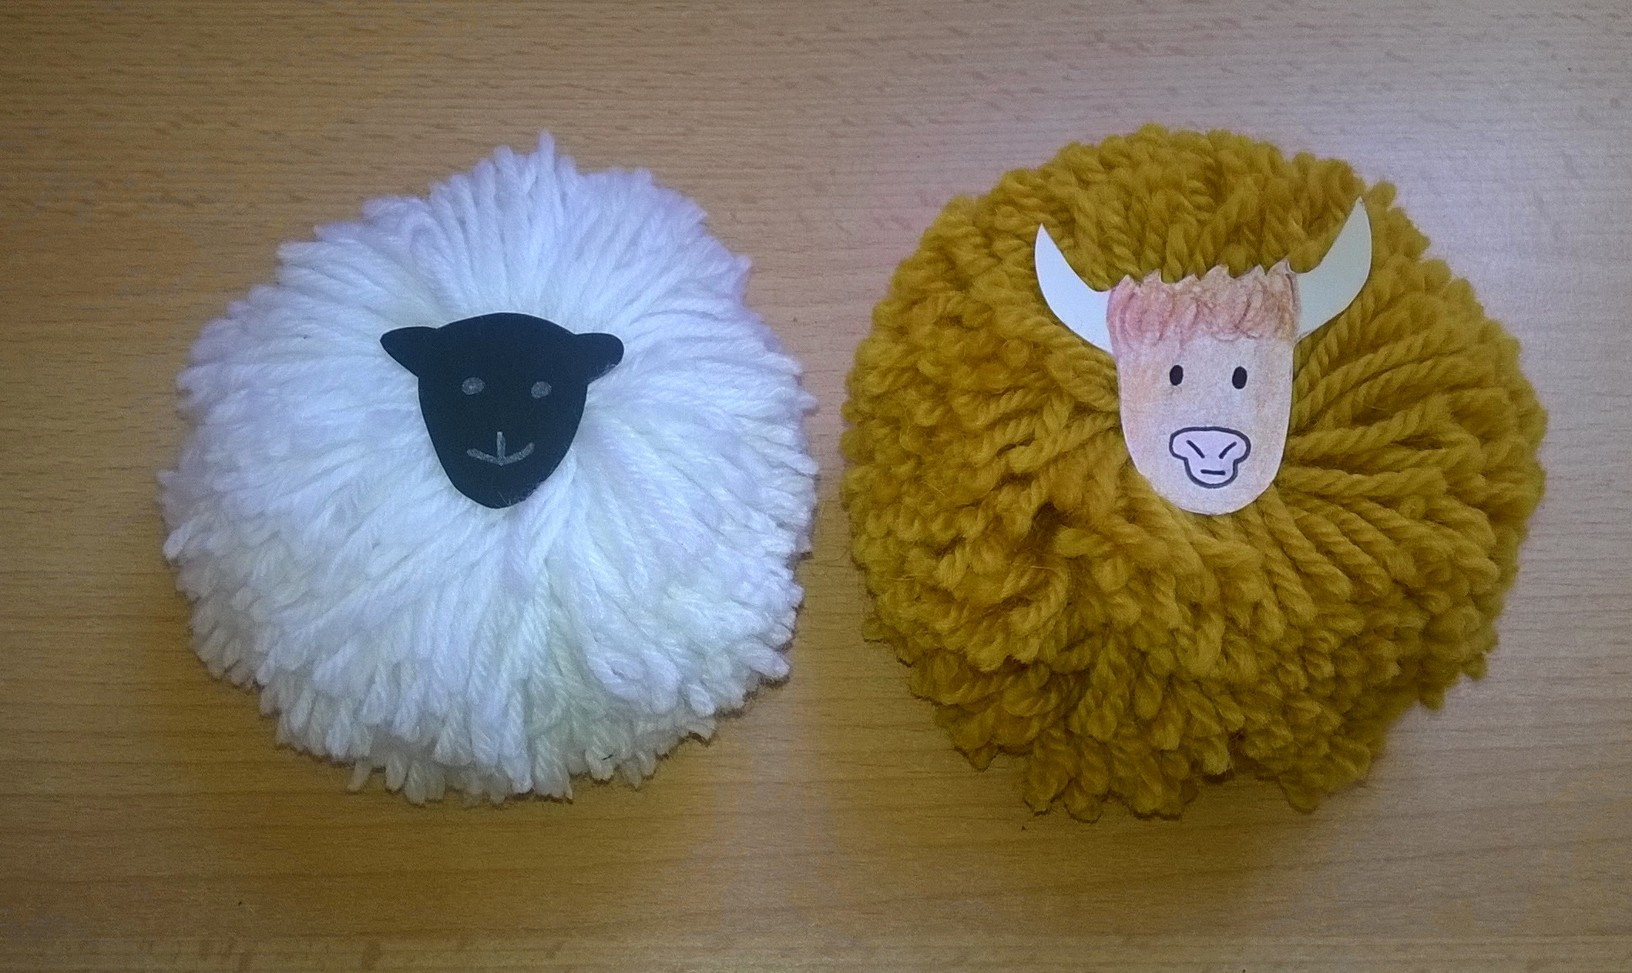 Animal Creation Crafts at Ryedale Folk Museum